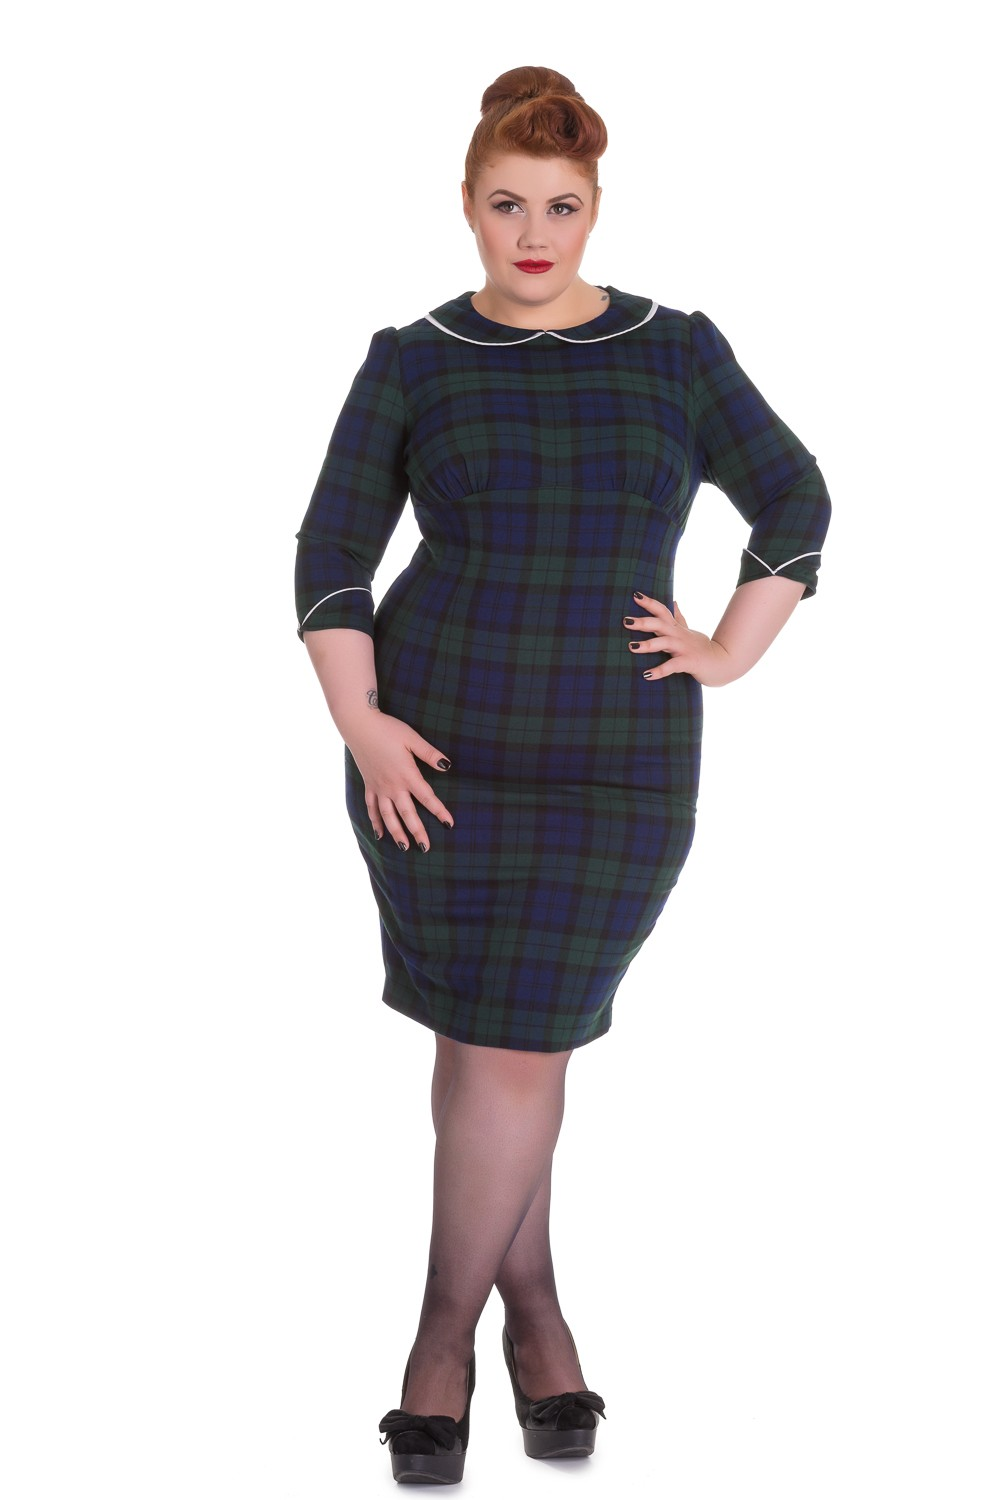 Hellbunnys Doralee pencil dress stl 2XL-4XL